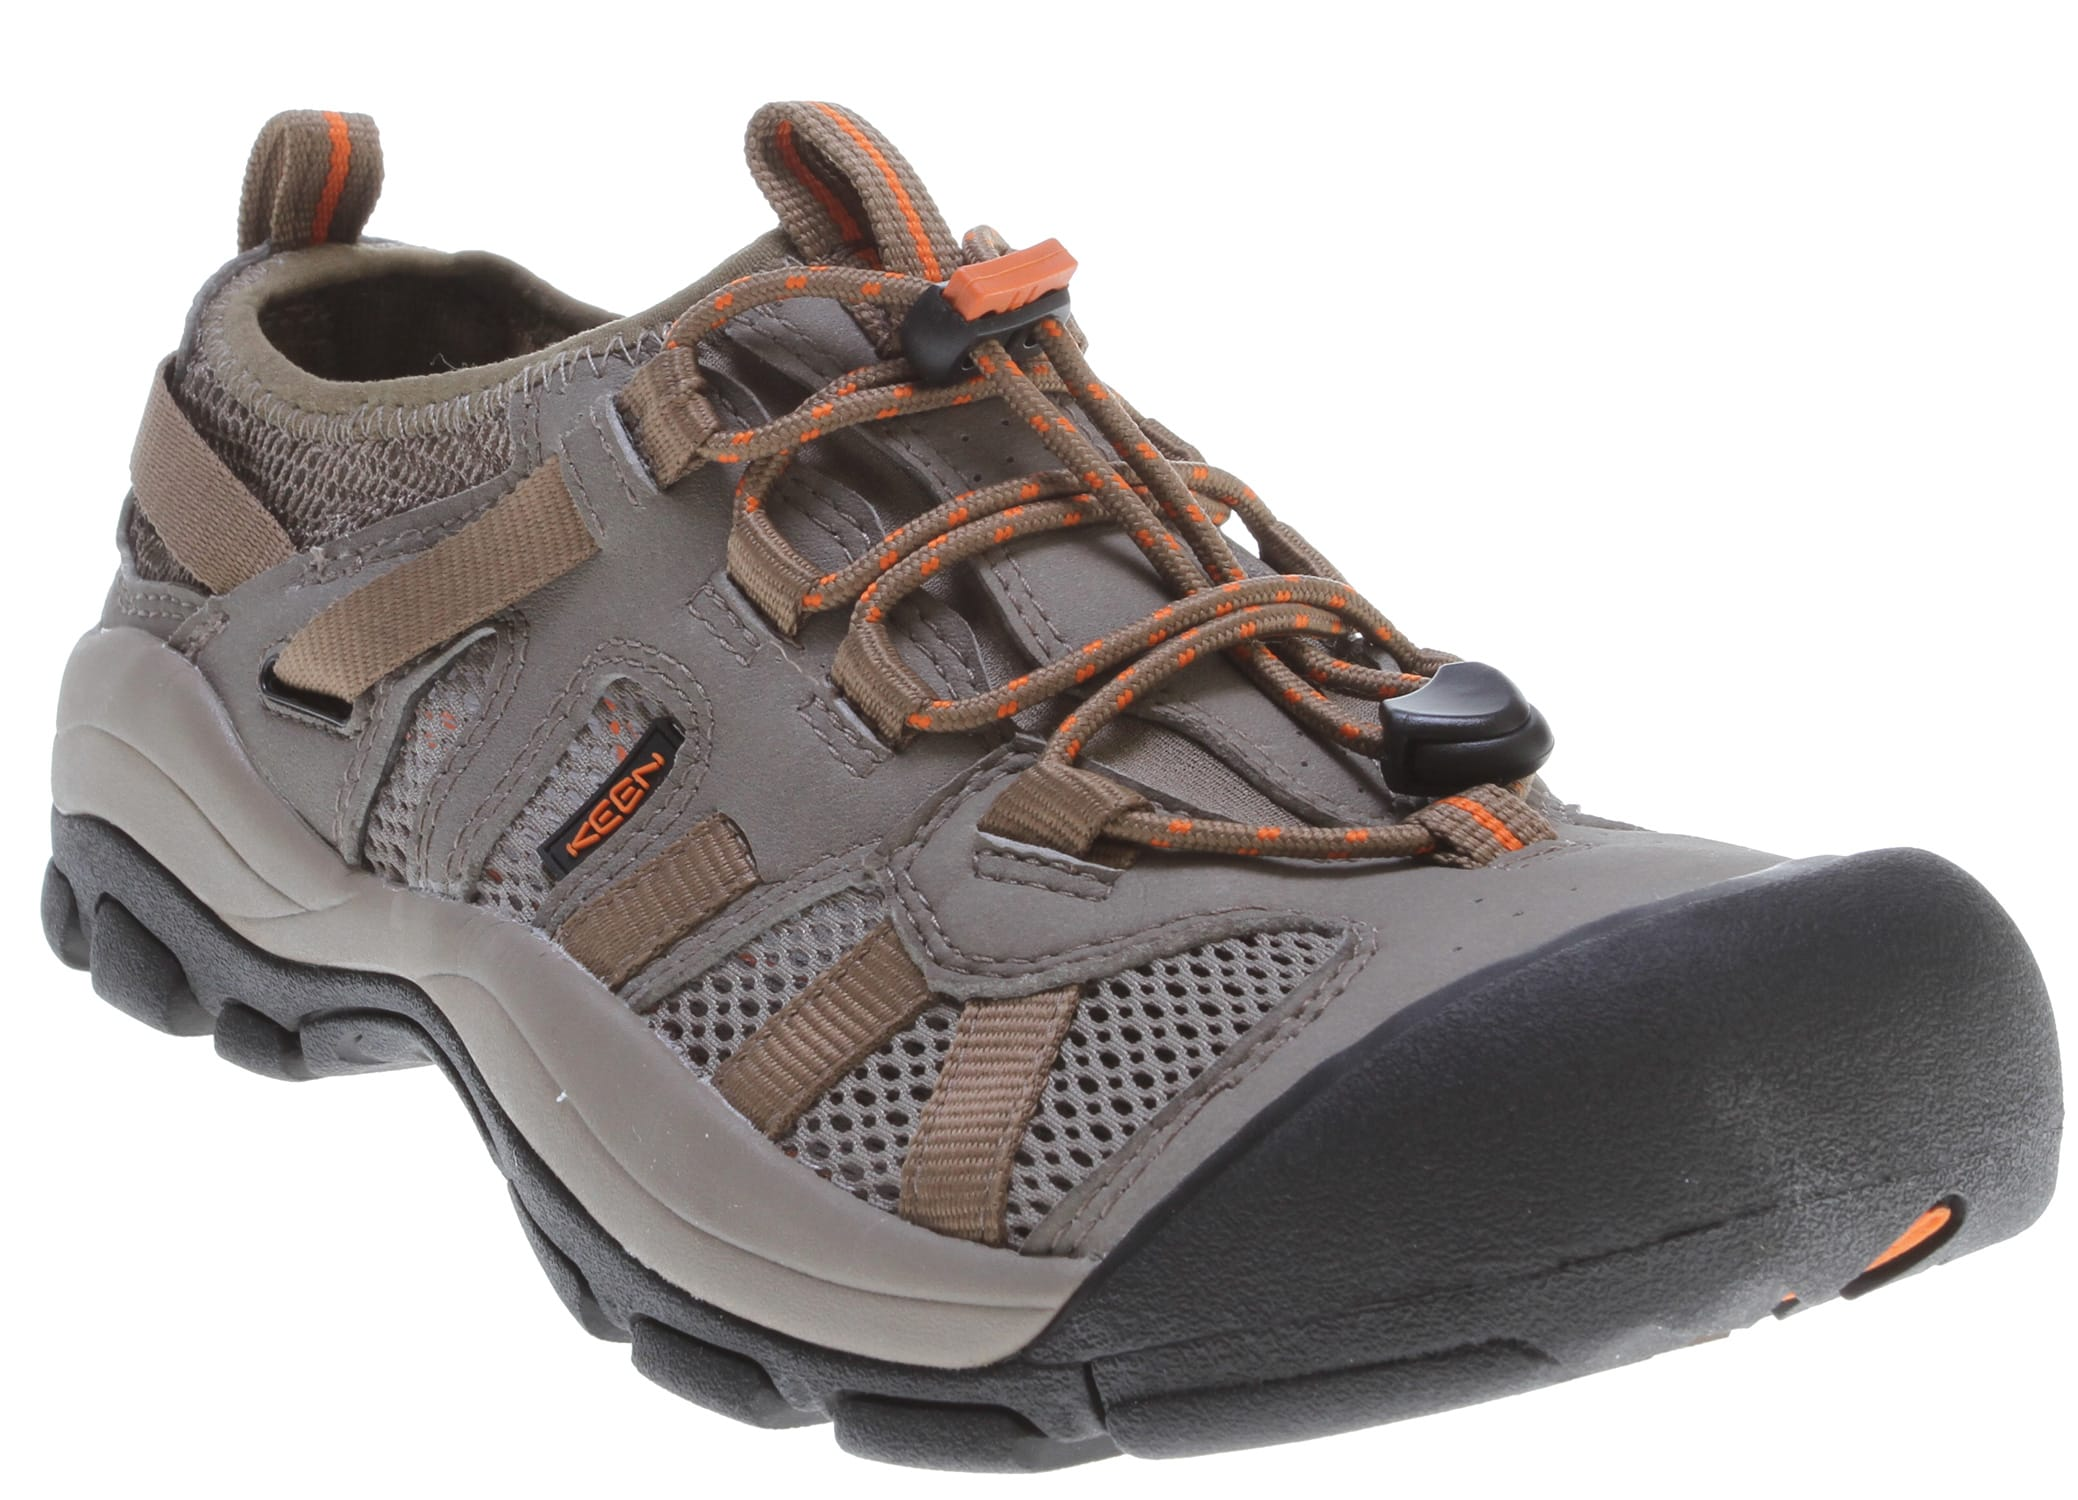 0f94fa497482 Keen Mckenzie Water Shoes - thumbnail 2